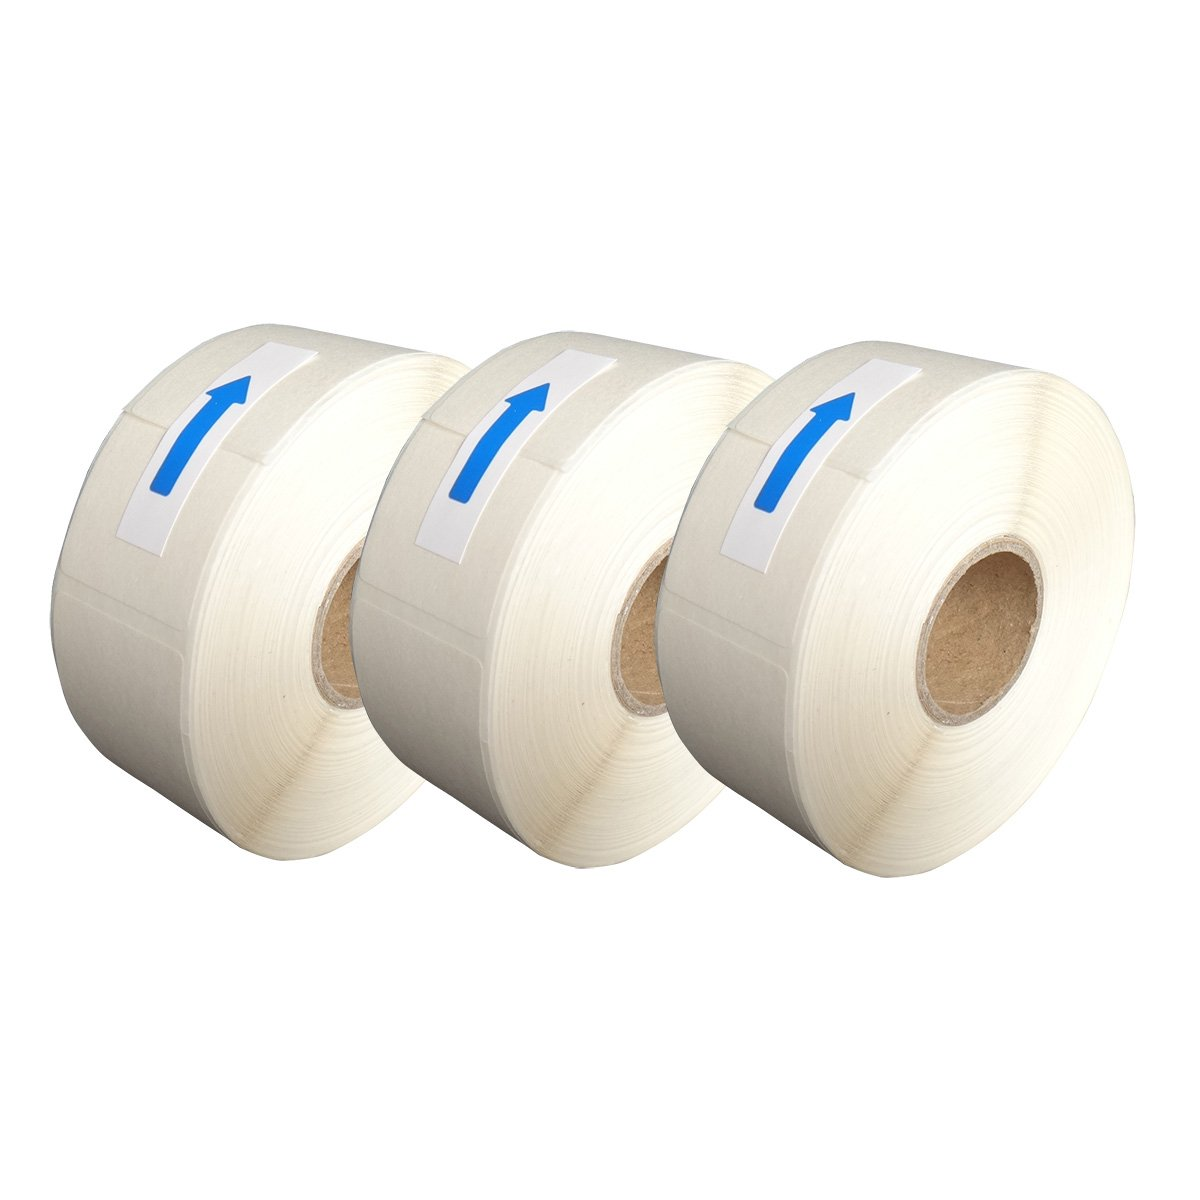 DAYSPOTS Blank White 1 x 2 Inch Dissolvable Labels For Food Rotation Prep roll of 500 (3 Pack)